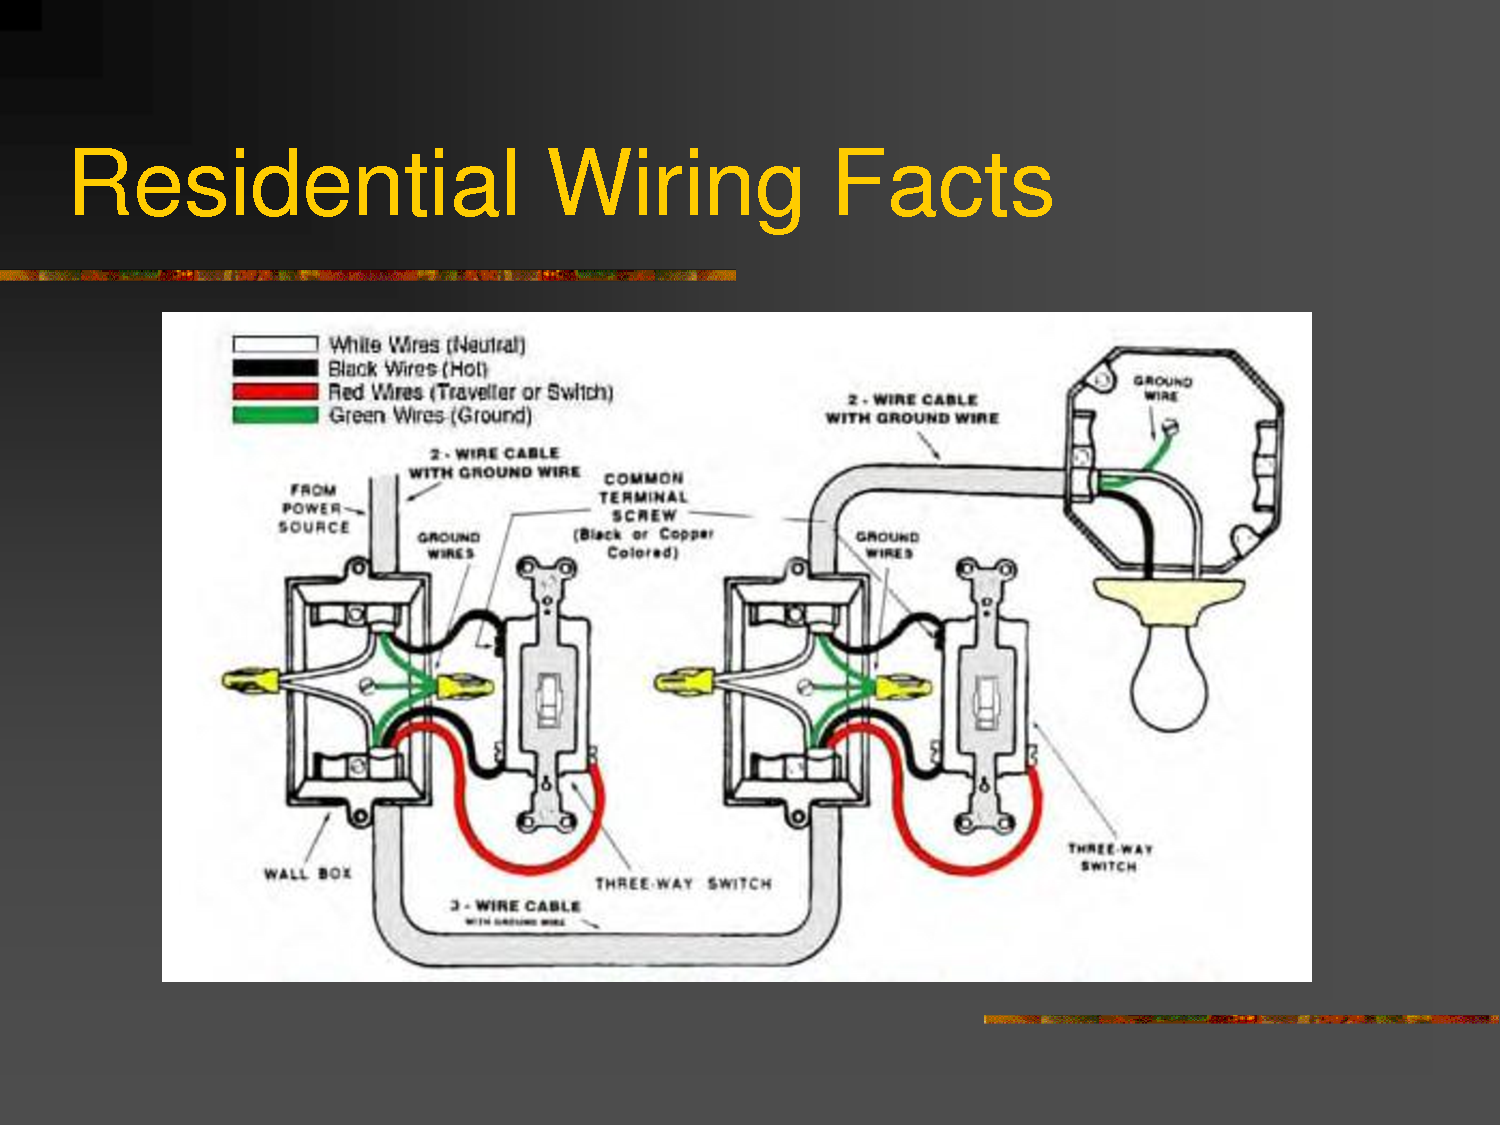 Residential Electrical Wiring Diagrams - I5.imixeasy.de • on automotive electrical diagrams, junction box, home wiring, mains electricity by country, house plumbing diagrams, house wiring light switch, house electrical single line diagram, electrical wiring in north america, house electrical installation, ring circuit, house wiring codes, knob and tube wiring, distribution board, sample electrical diagrams, power cable, house electrical circuit diagram, light switch, pull station diagrams, electrical connections diagrams, lighting electrical diagrams, ac power plugs and sockets, house electrical parts, house wiring colors, circuit breaker, house electrical codes, house wiring 101, earthing system, house wiring diagram examples, house electrical blueprints, three-phase electric power, electrical system design, house electrical schematics, ground and neutral, circuit diagram, house schematic diagram, house wire diagrams, electrical conduit, national electrical code,